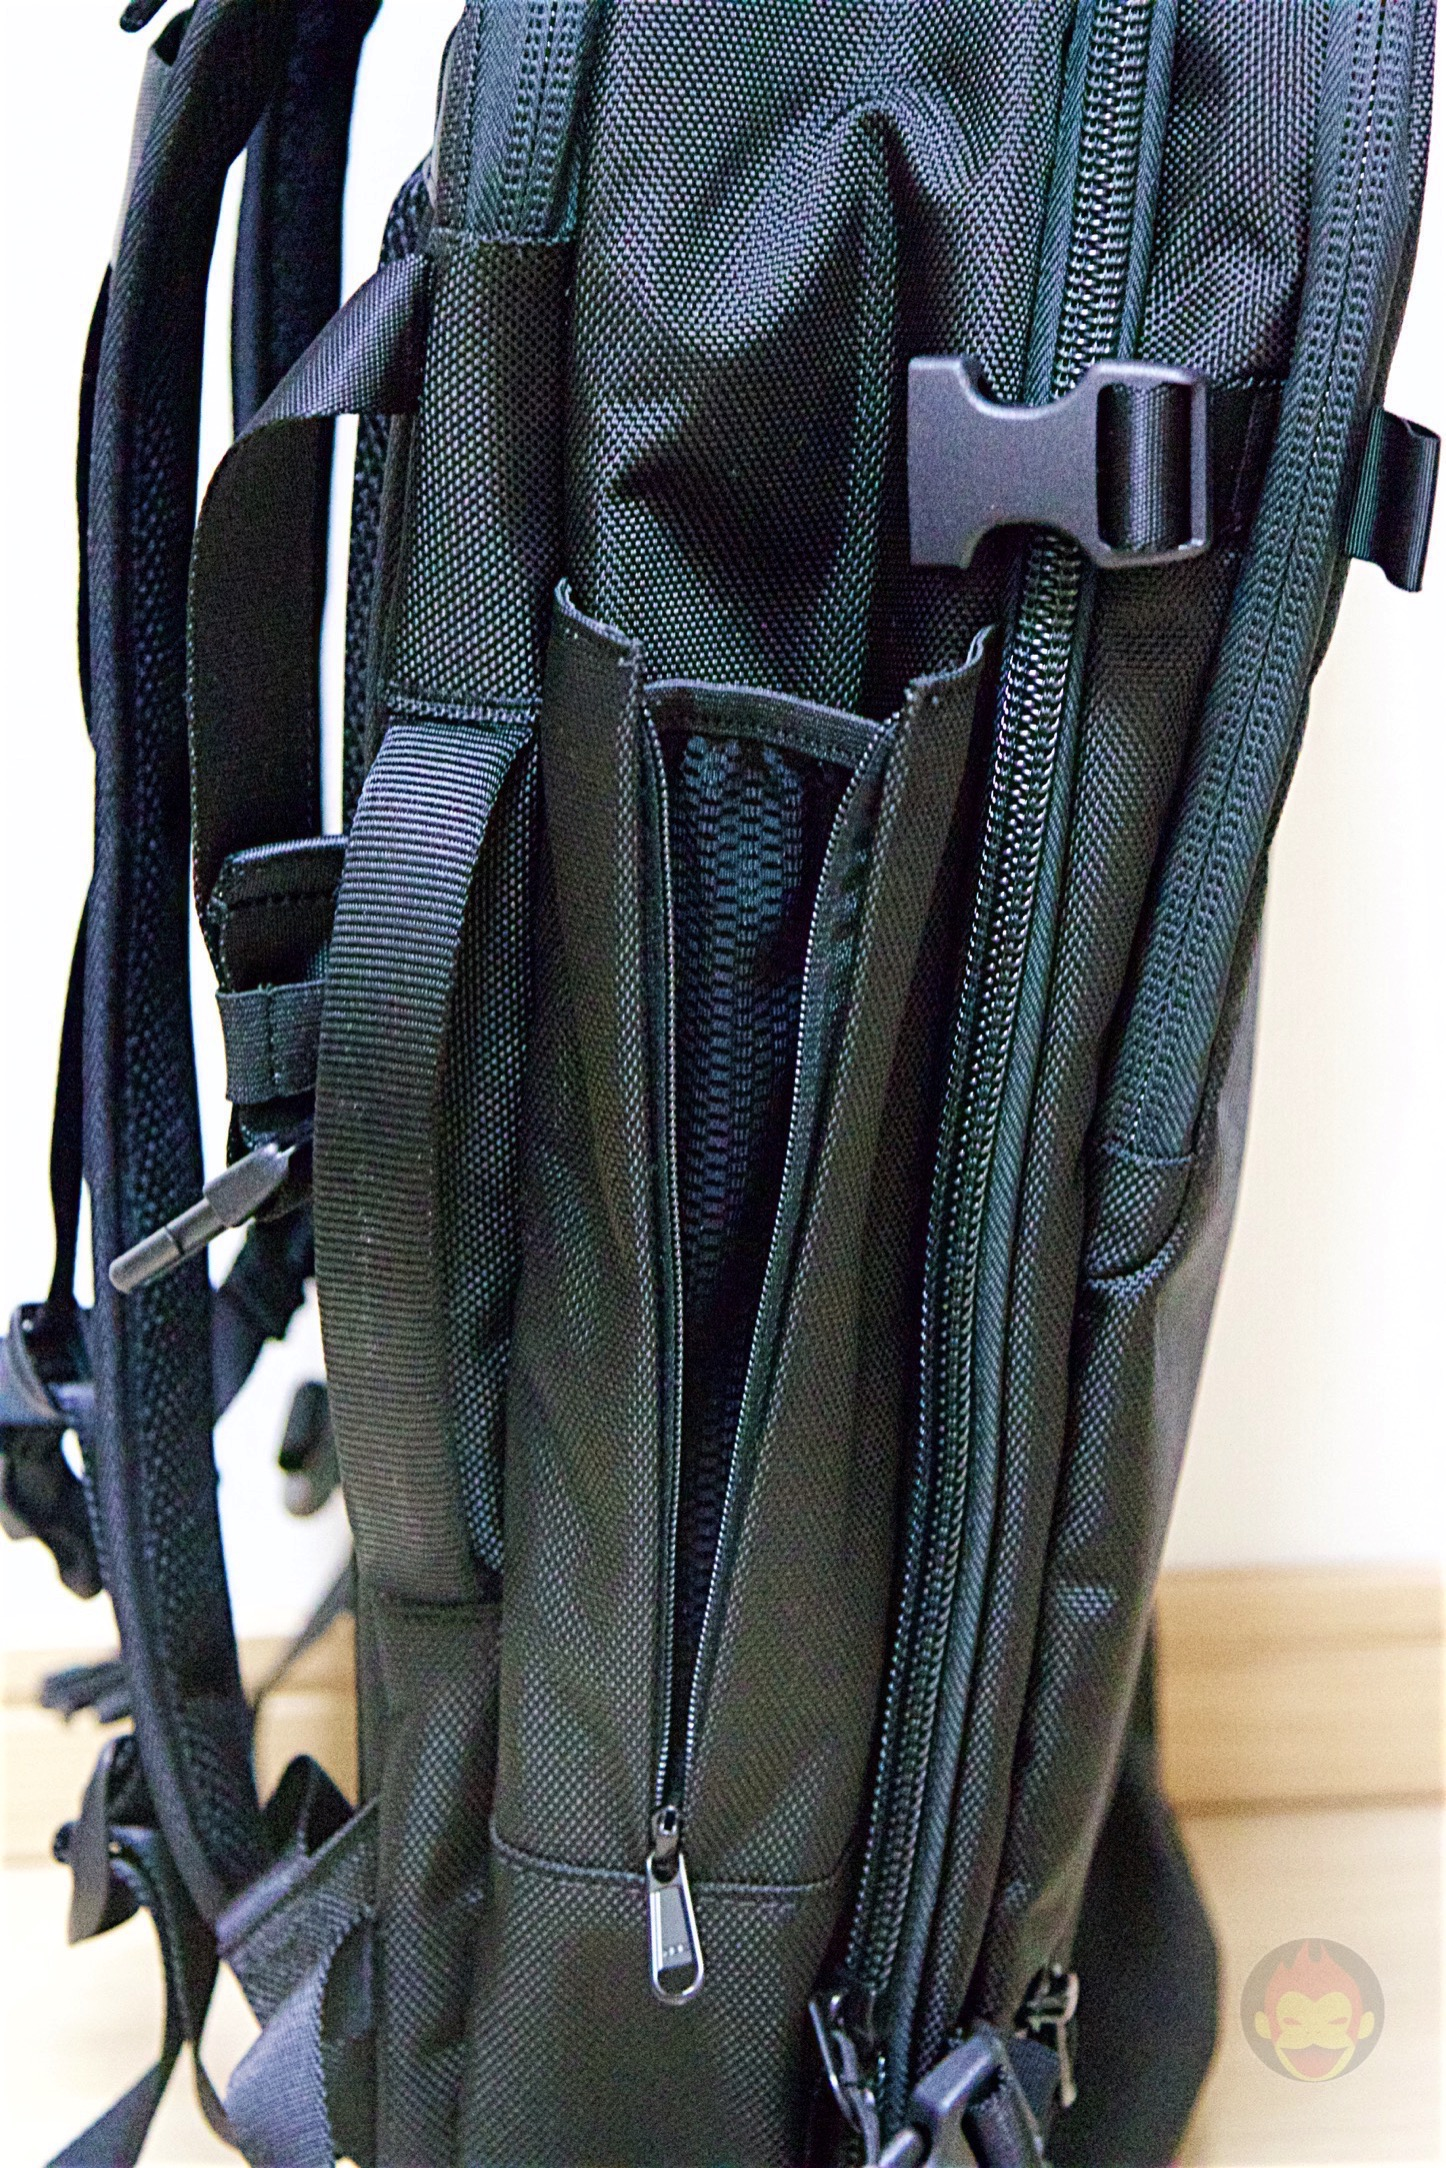 Aer-Travel-BackPack-on-Kickstarter-31.jpg